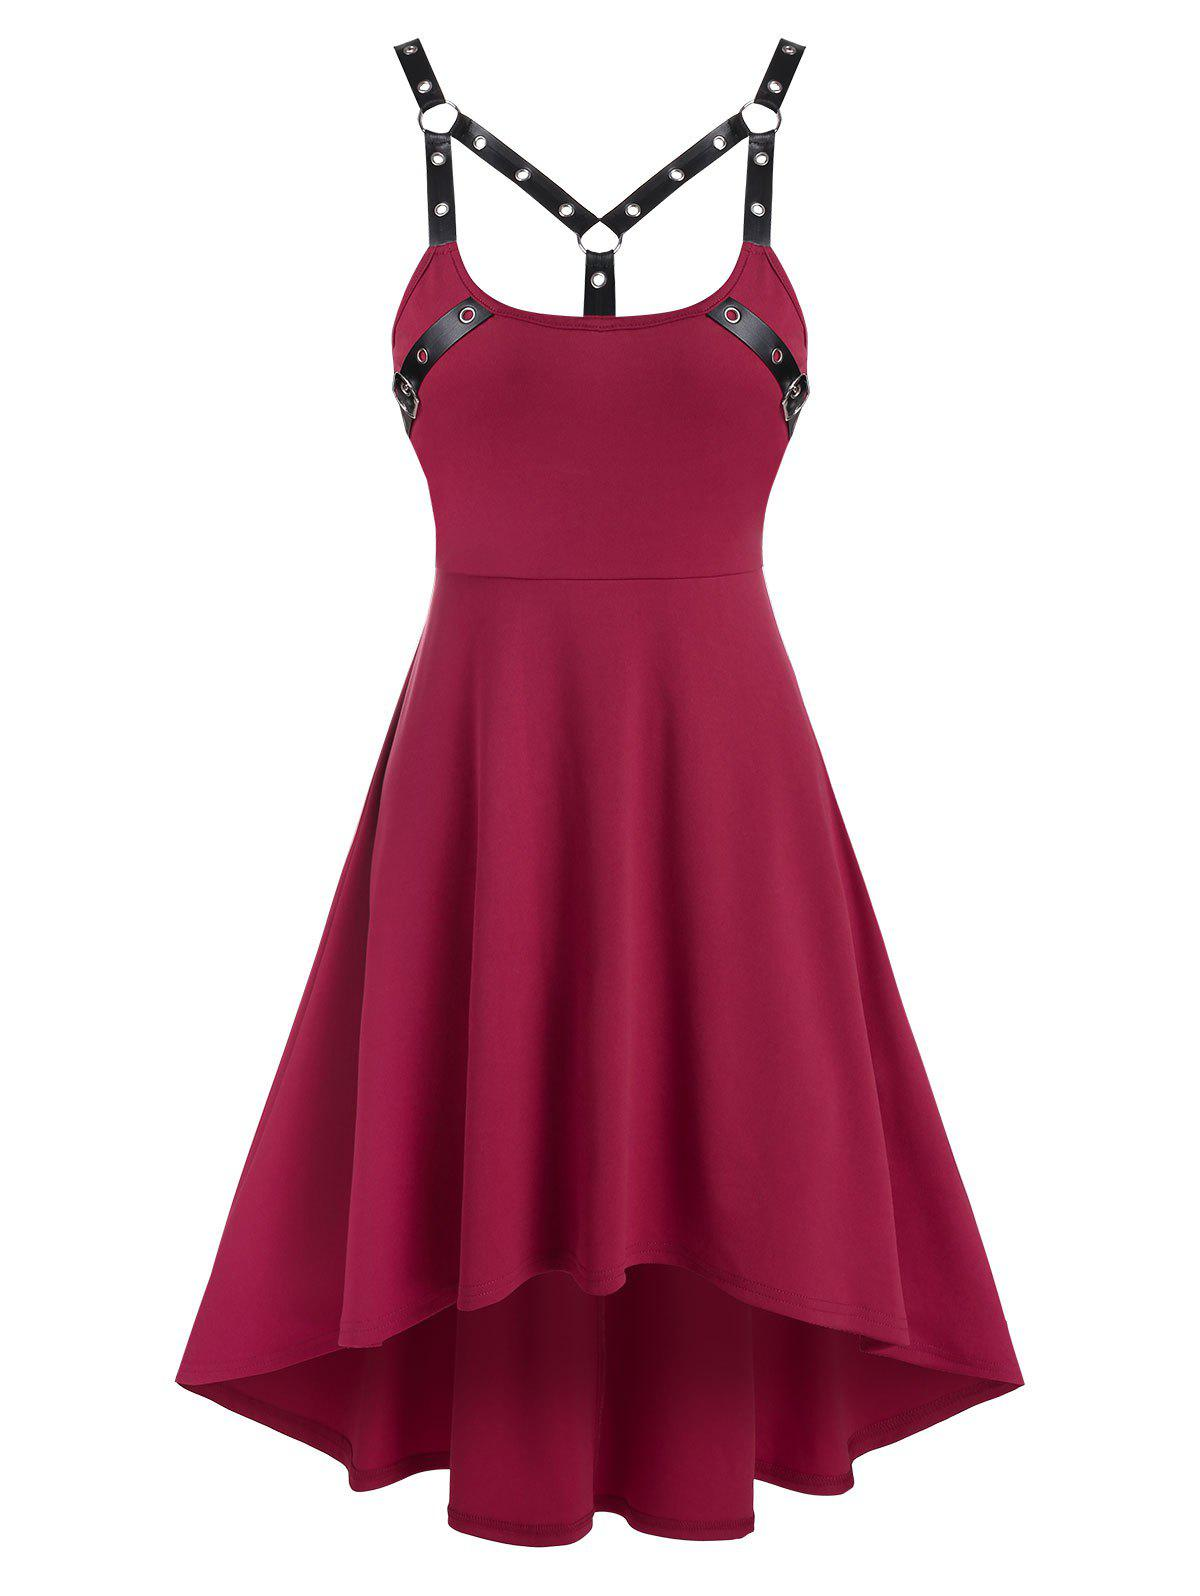 Harness Insert Sleeveless High Low Gothic Dress - RED WINE 3XL